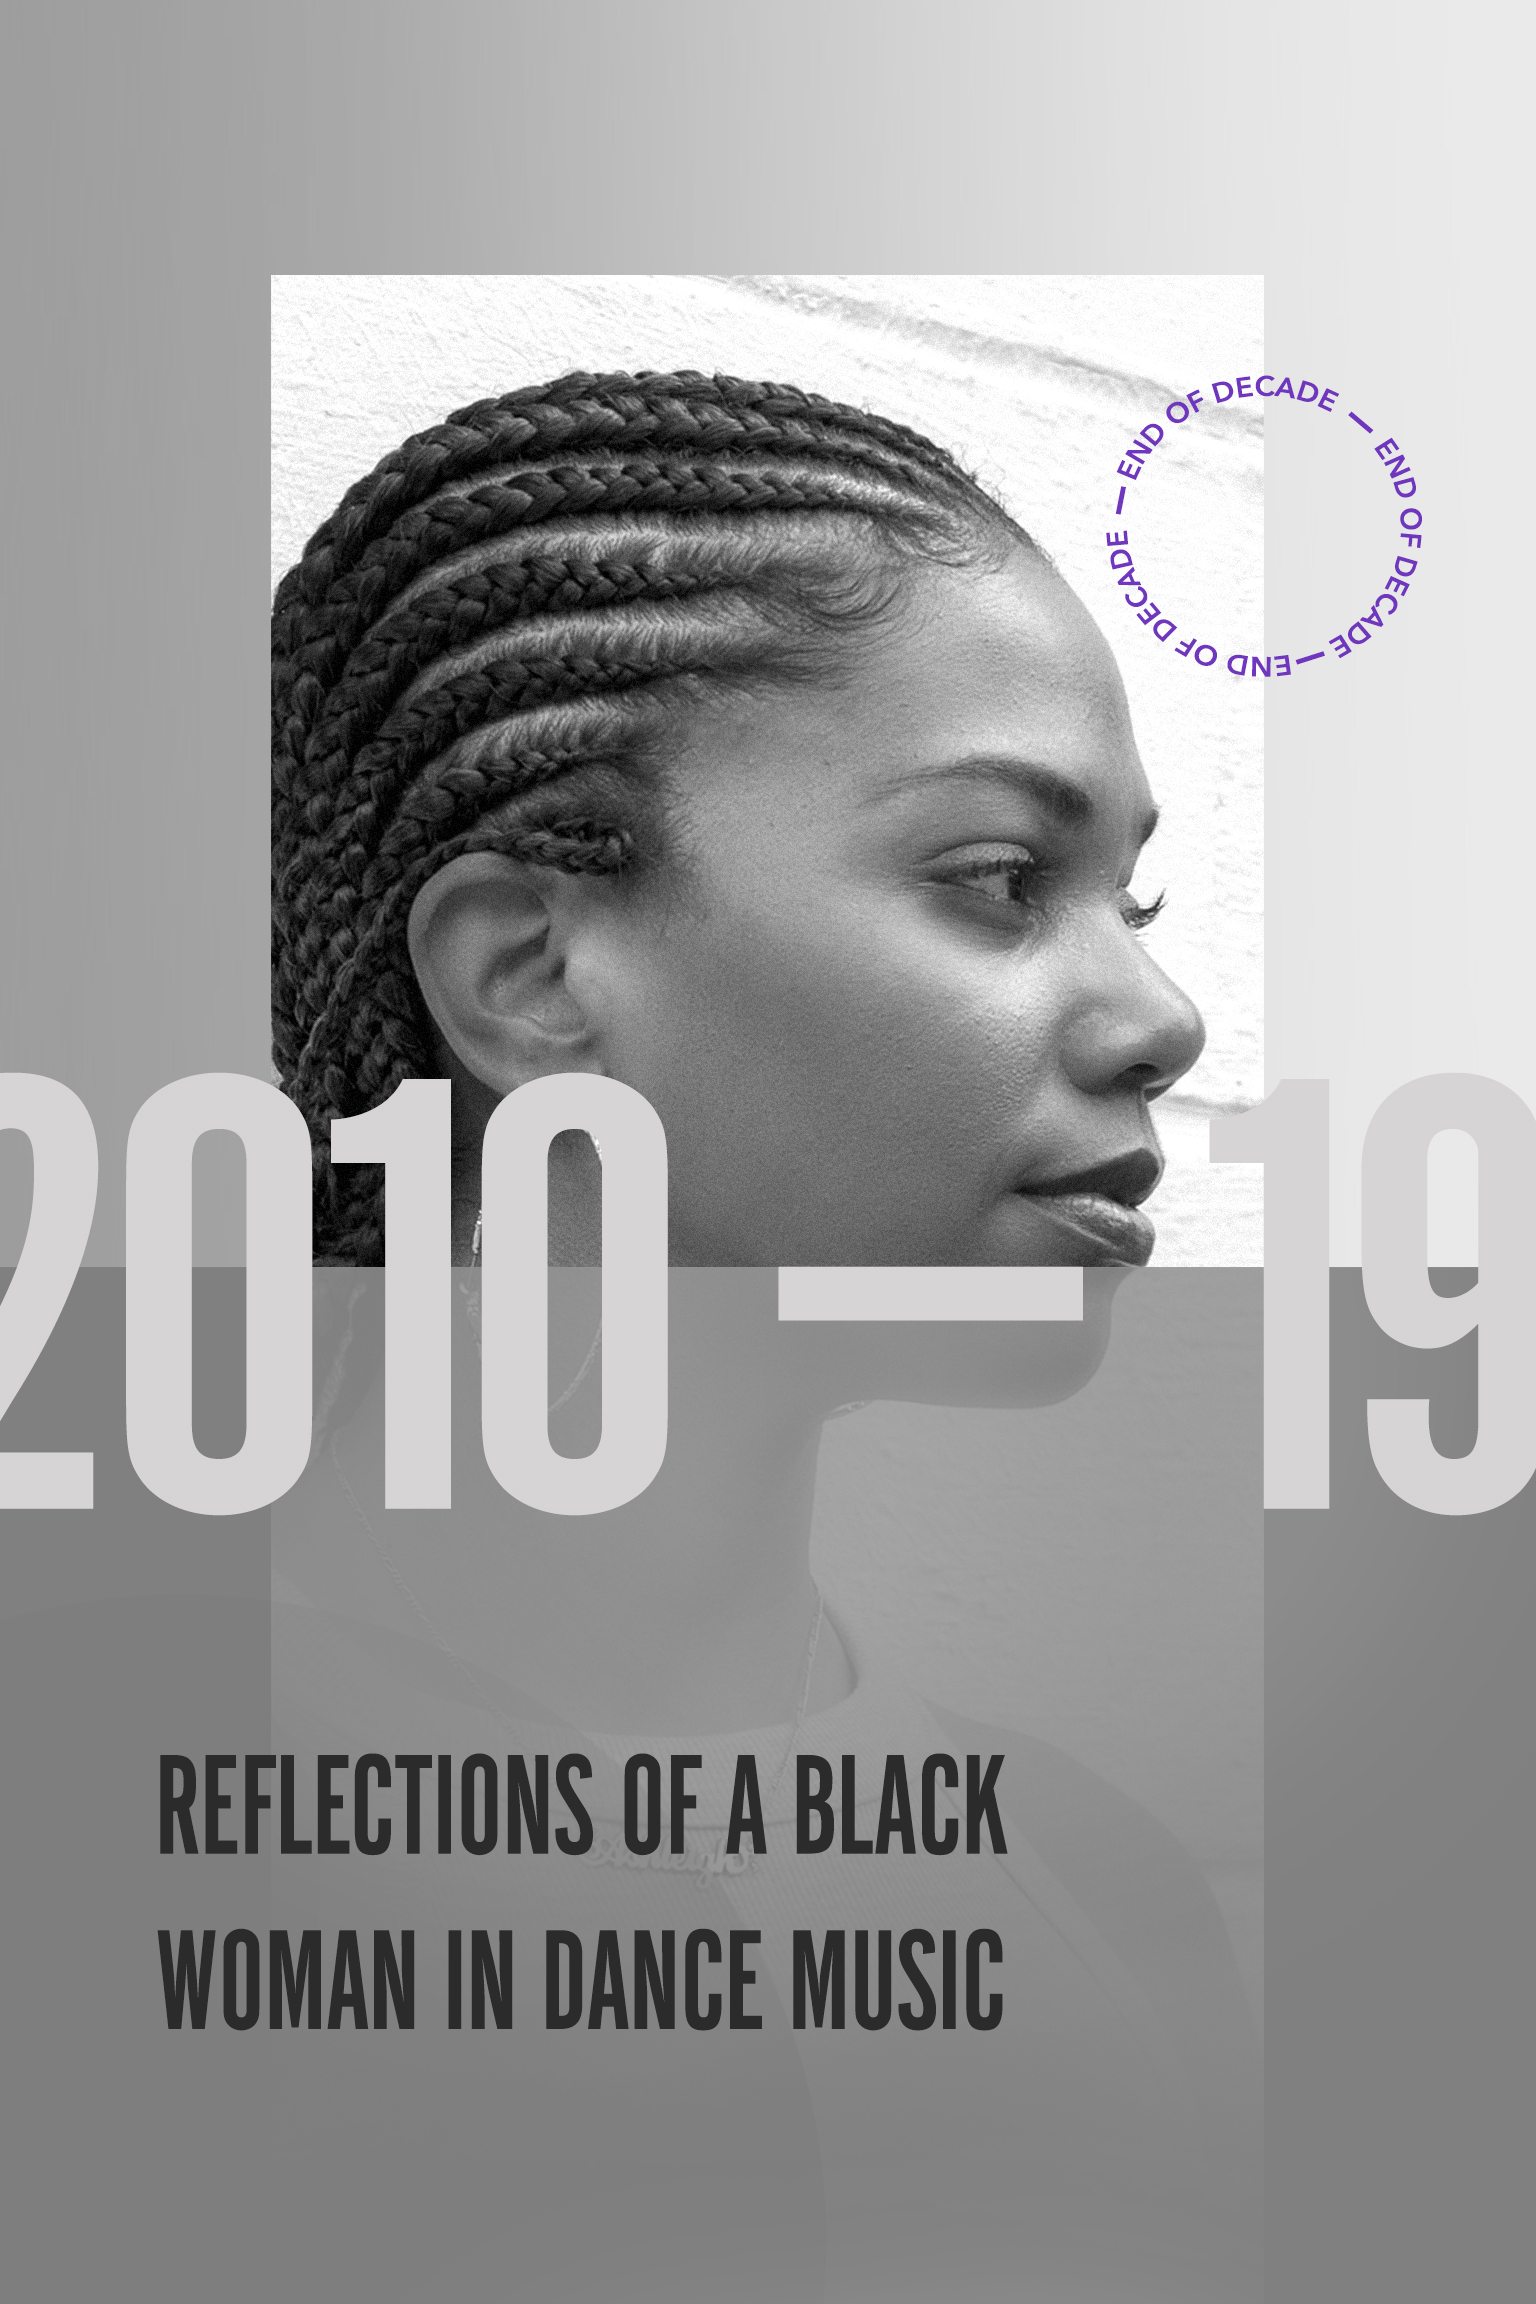 2010-19: Reflections Of A Black Woman In Dance Music